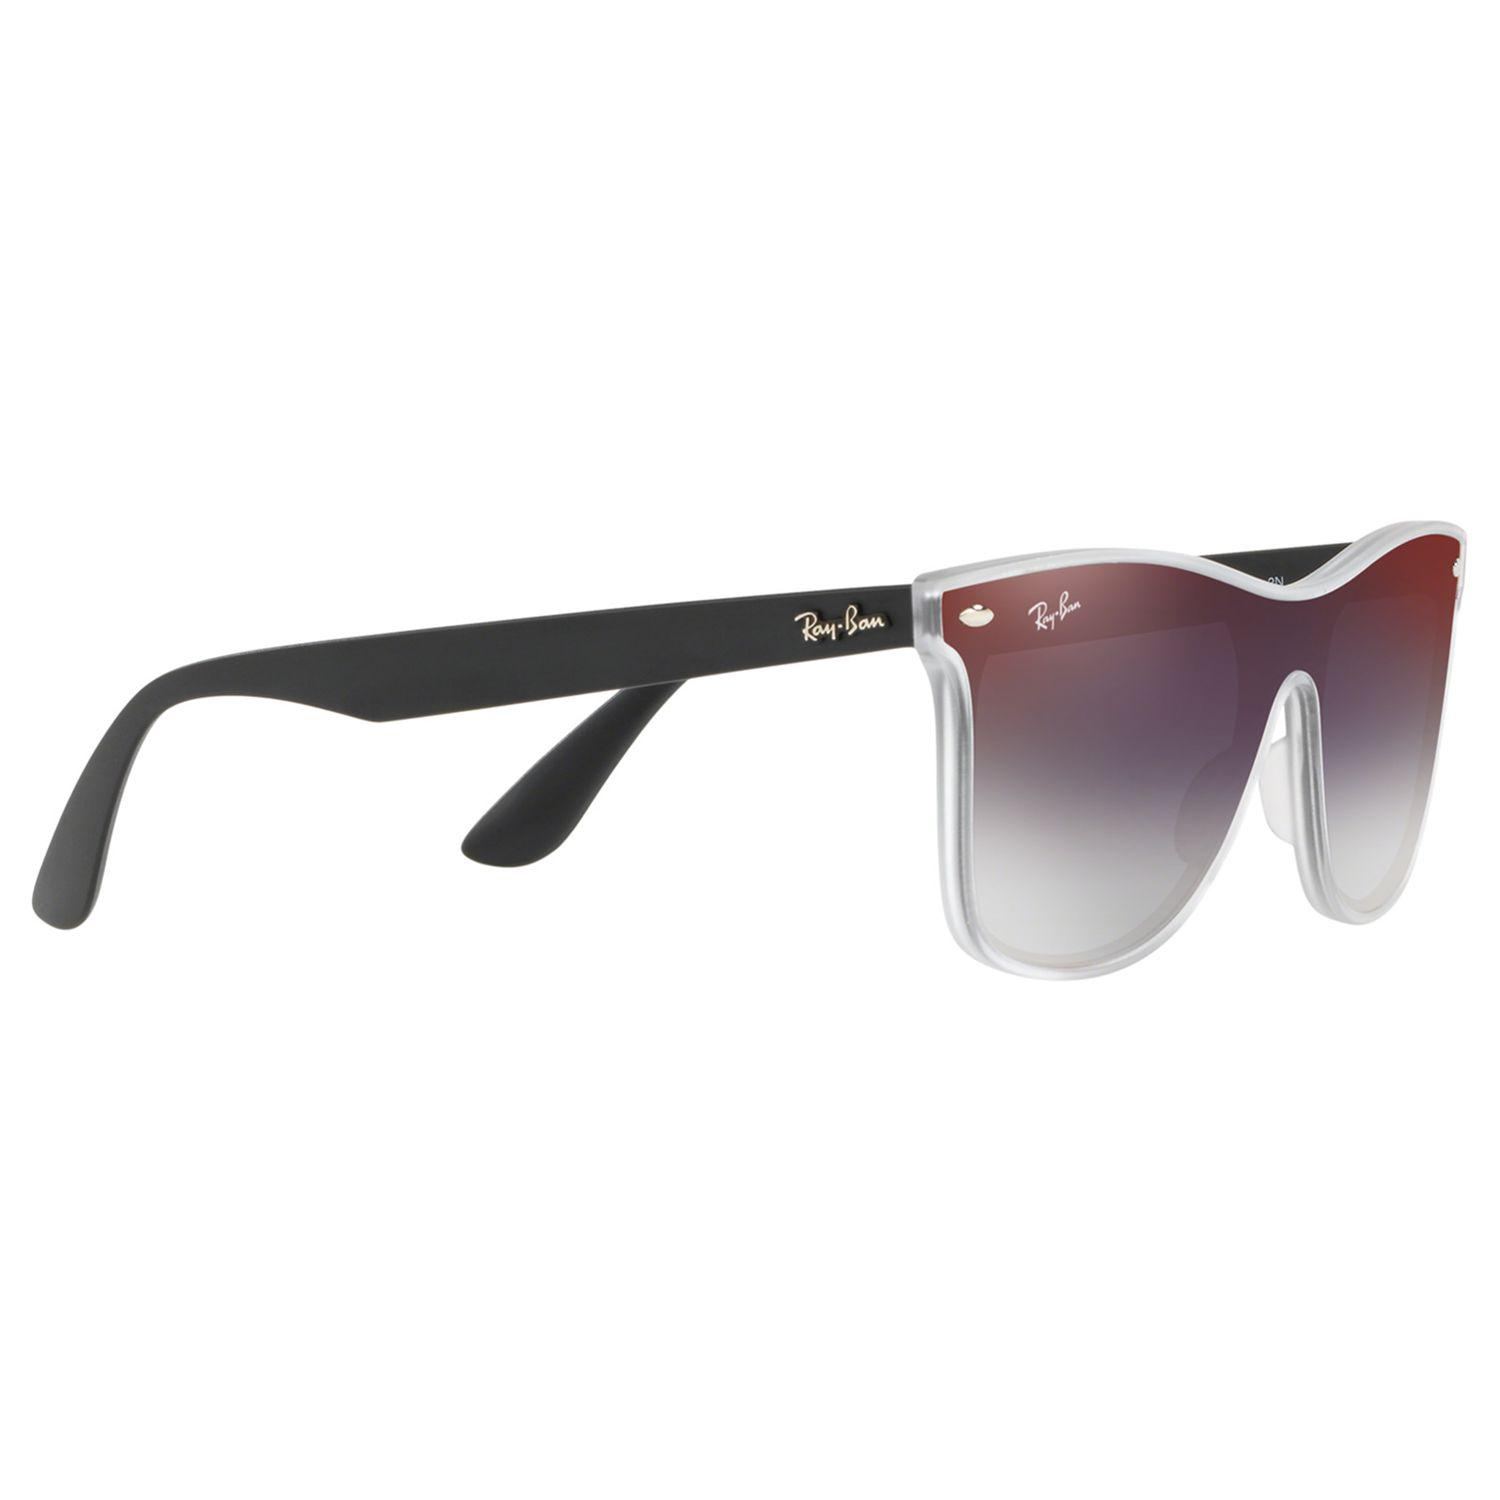 80a5501509 Ray-Ban Rb4440 Unisex Mirrored Sunglasses in Red for Men - Lyst